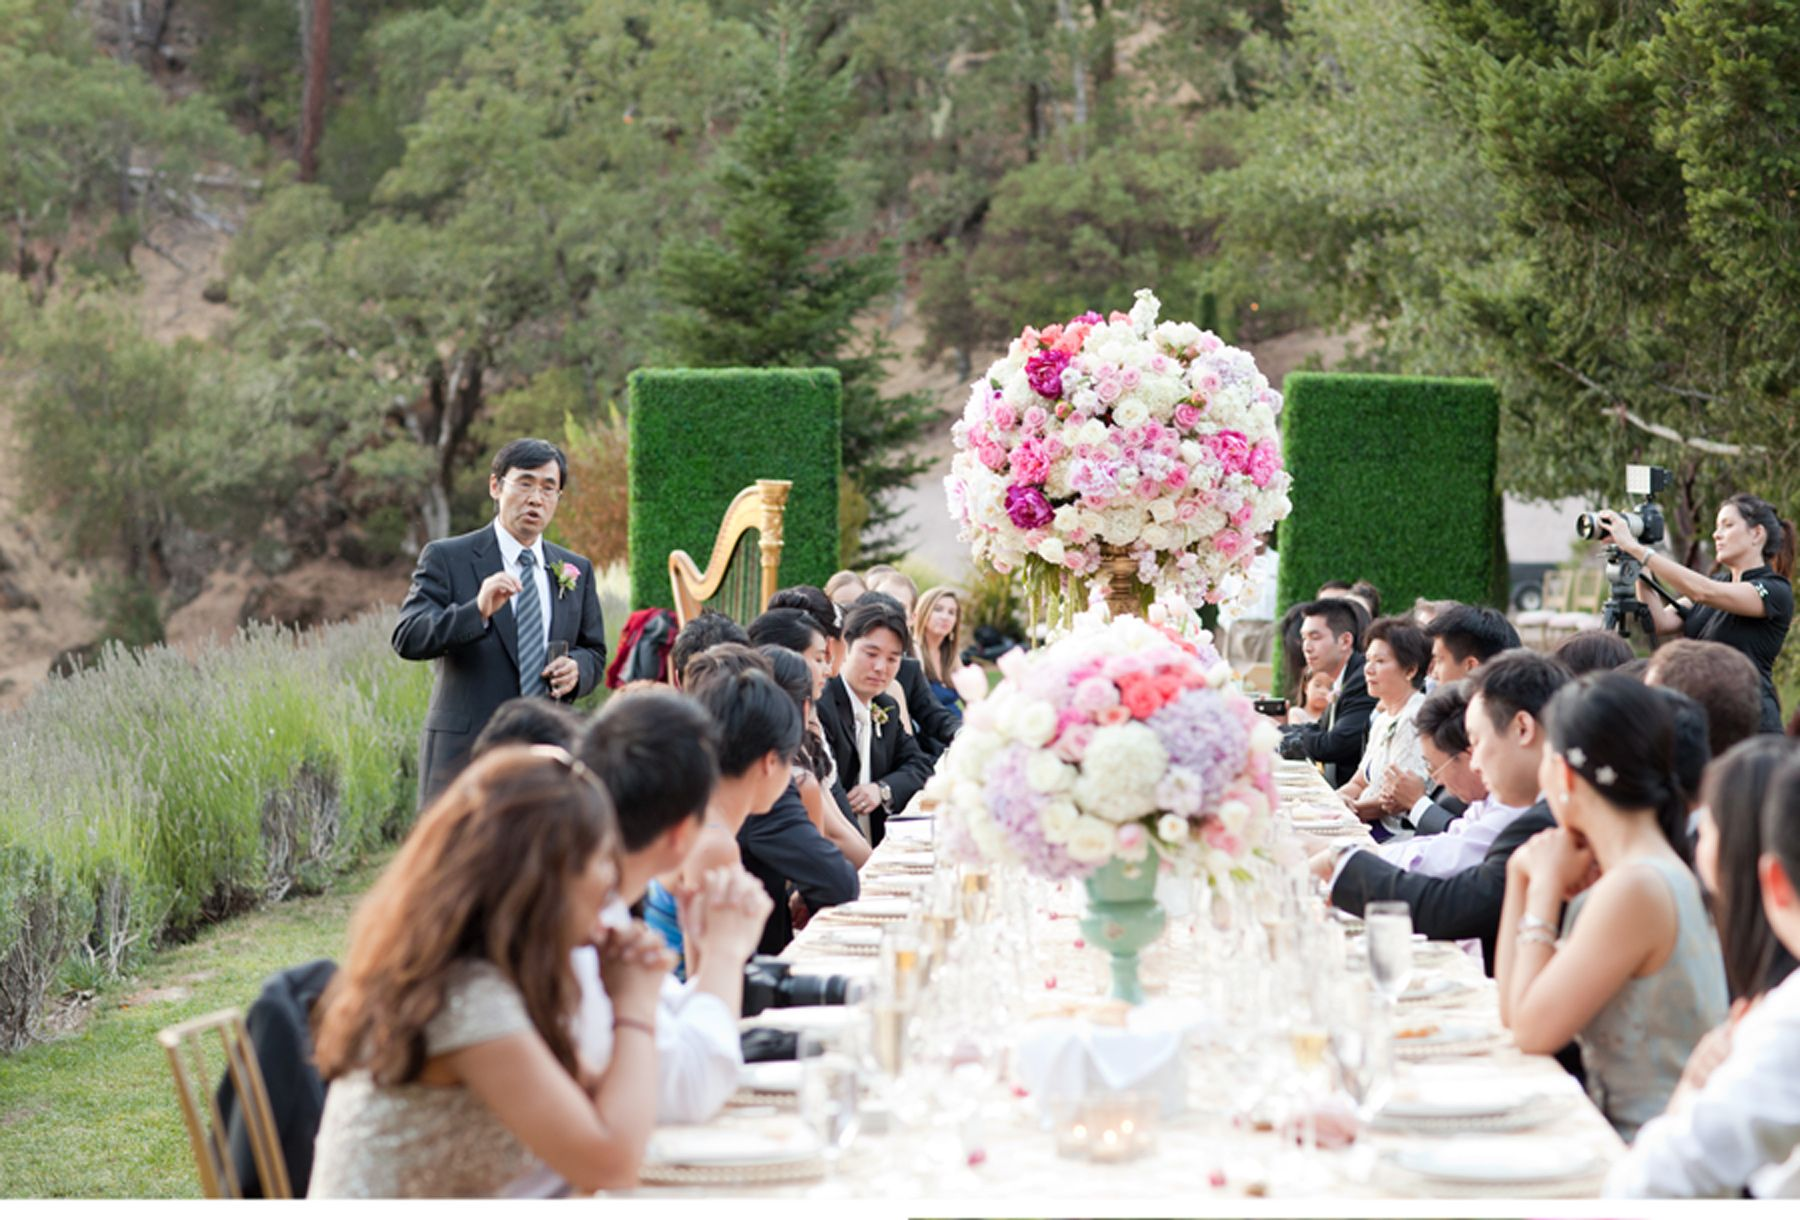 Our Muse - Elegant Ornate Wedding - Be inspired by Alice and Jason's ornate, romantic wedding in Napa - wedding